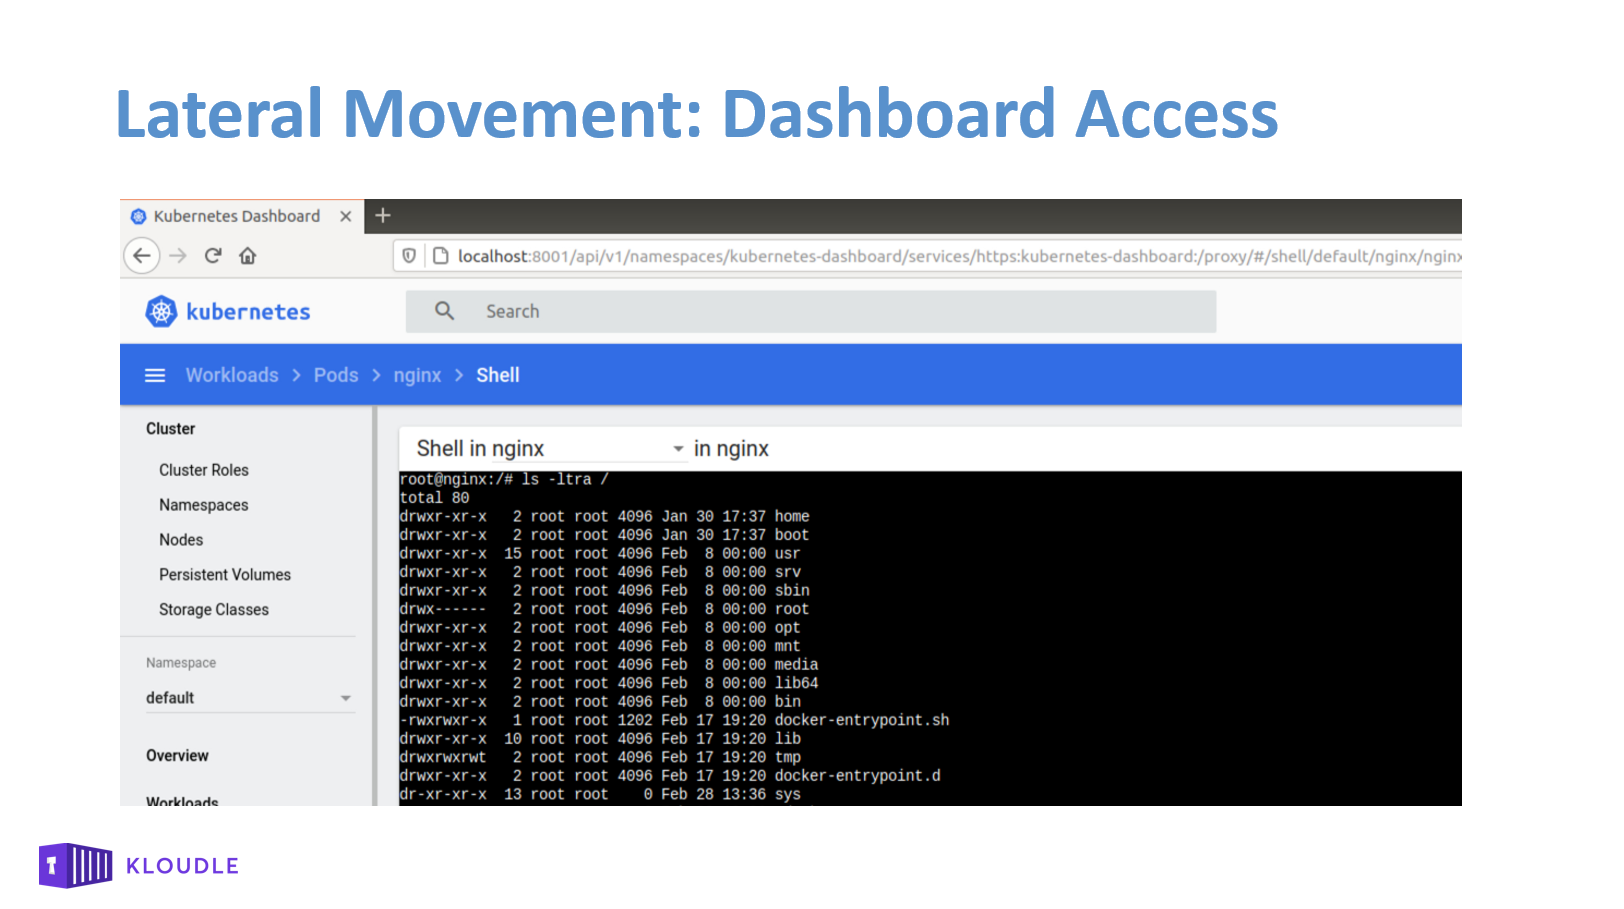 Lateral Movement - Dashboard Access